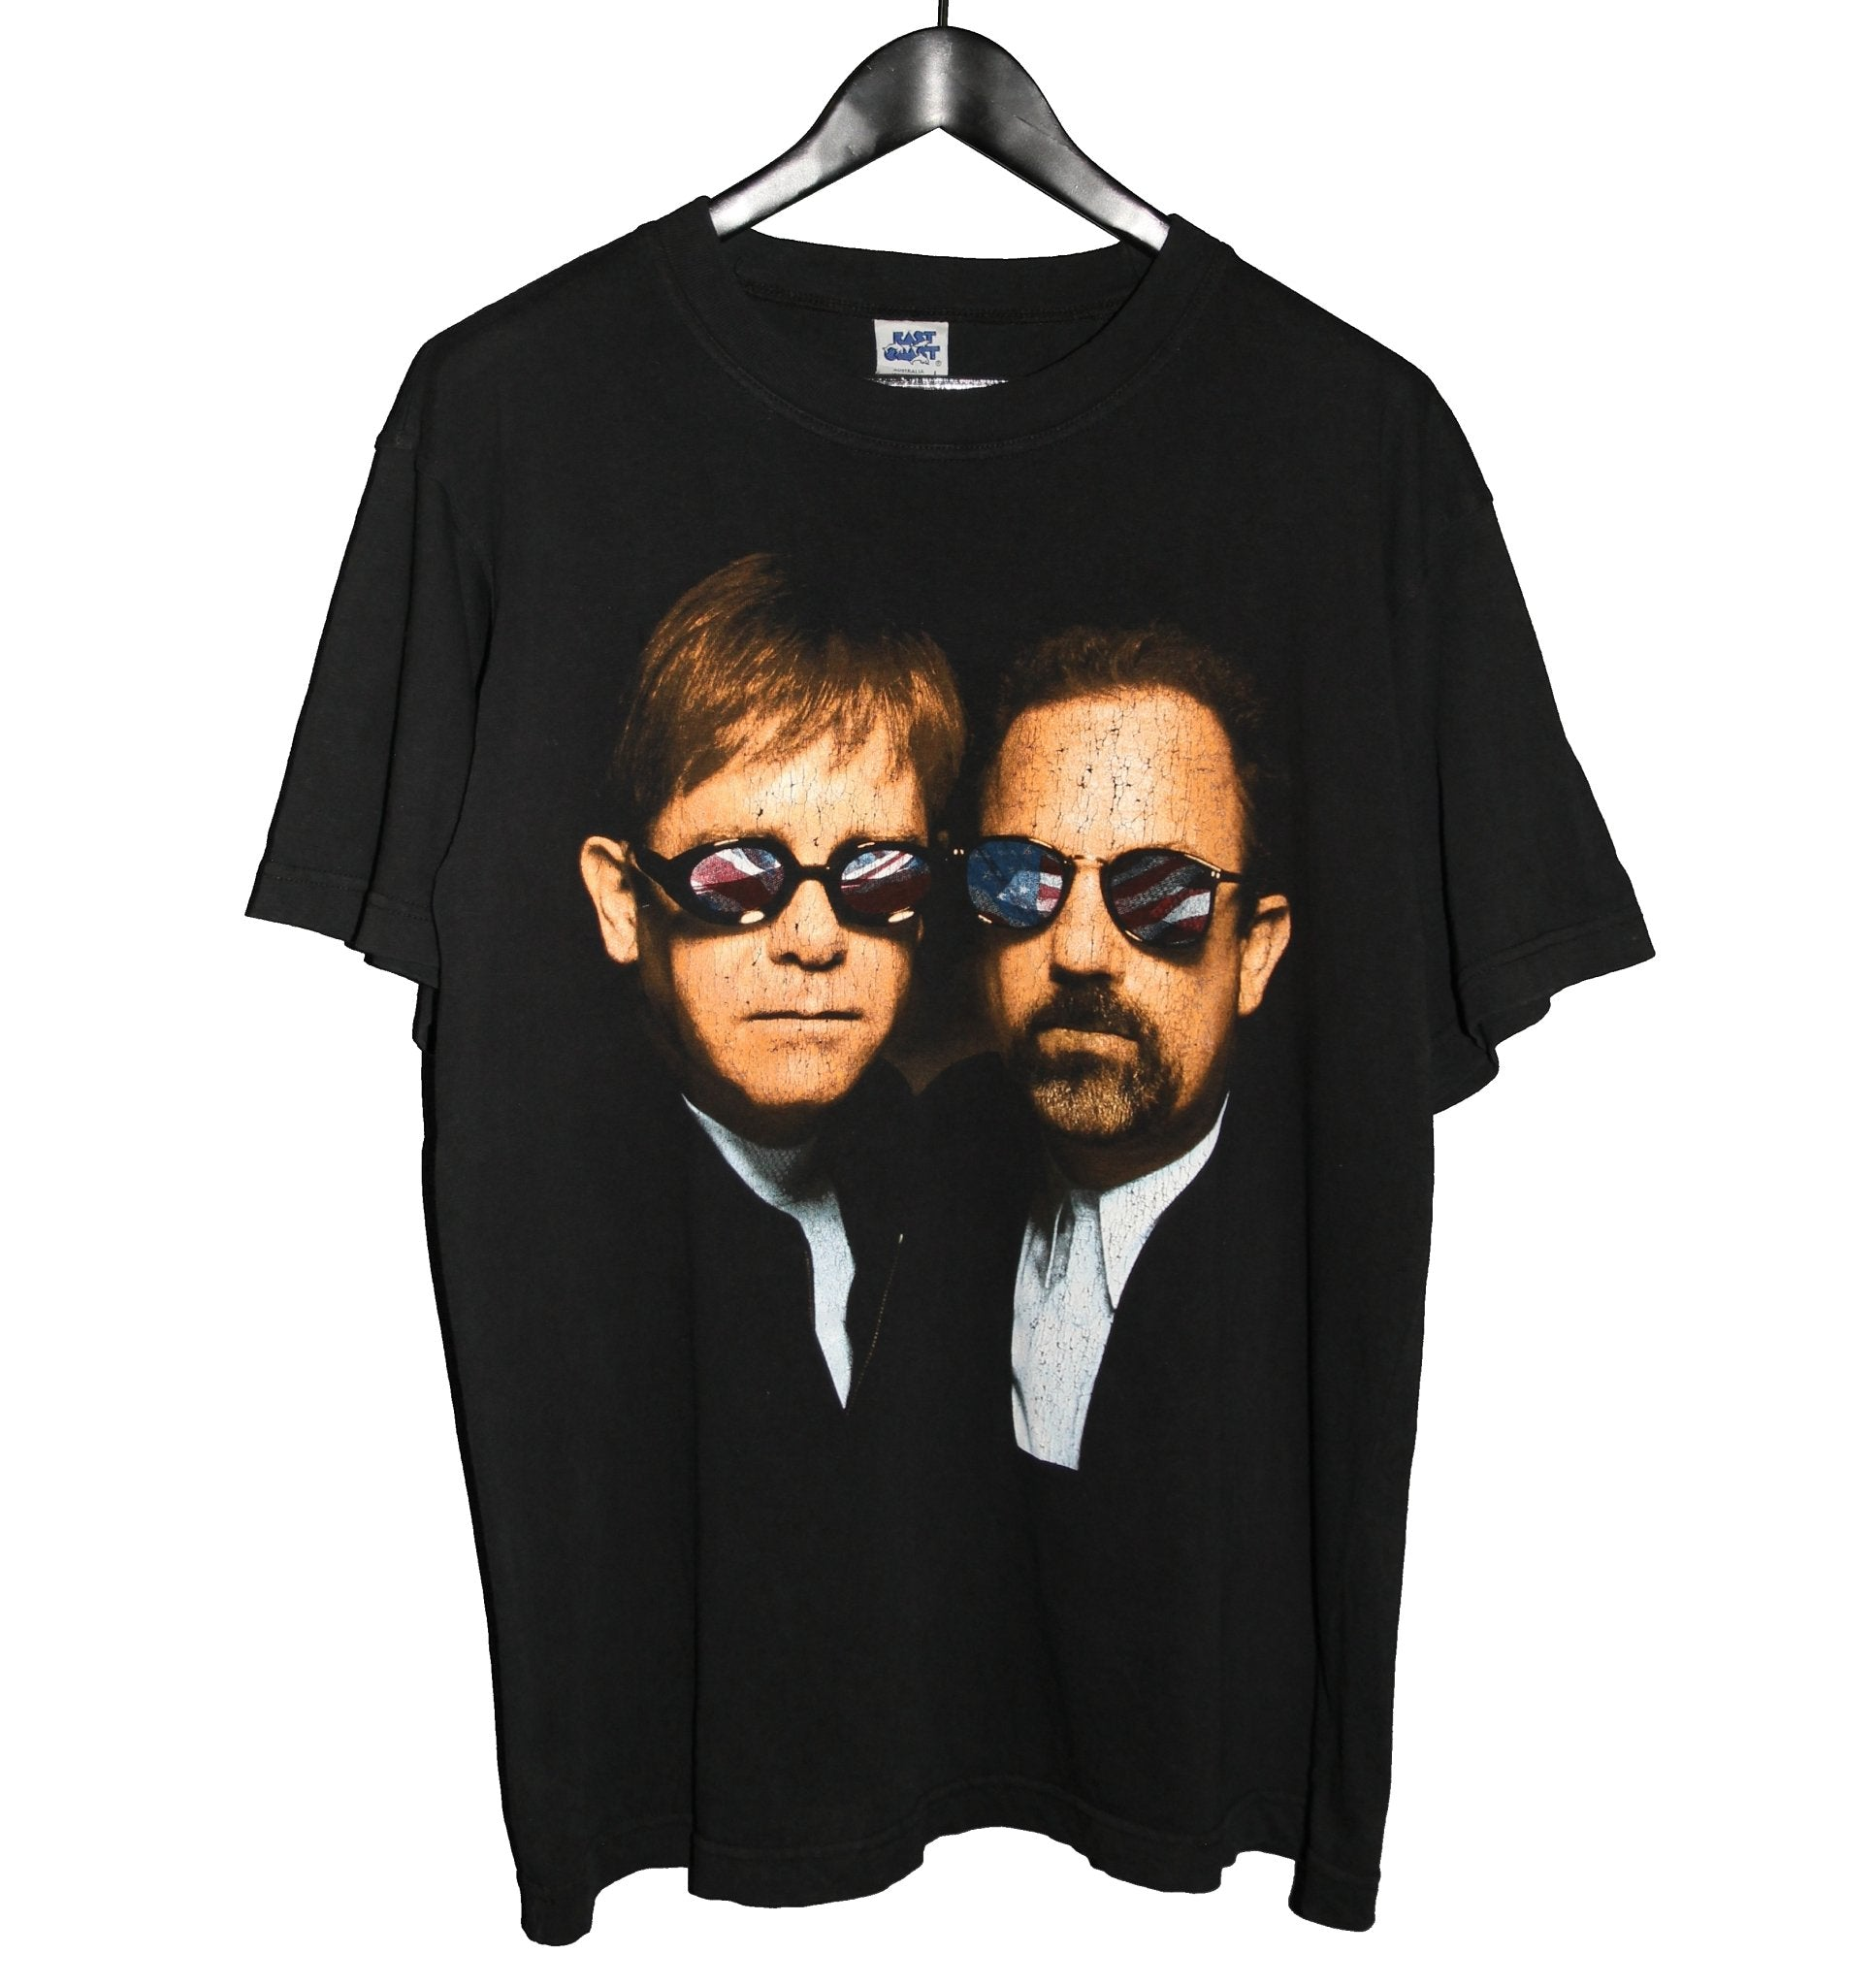 Elton John & Billy Joel 1998 Face To Face Tour Shirt - Faded AU